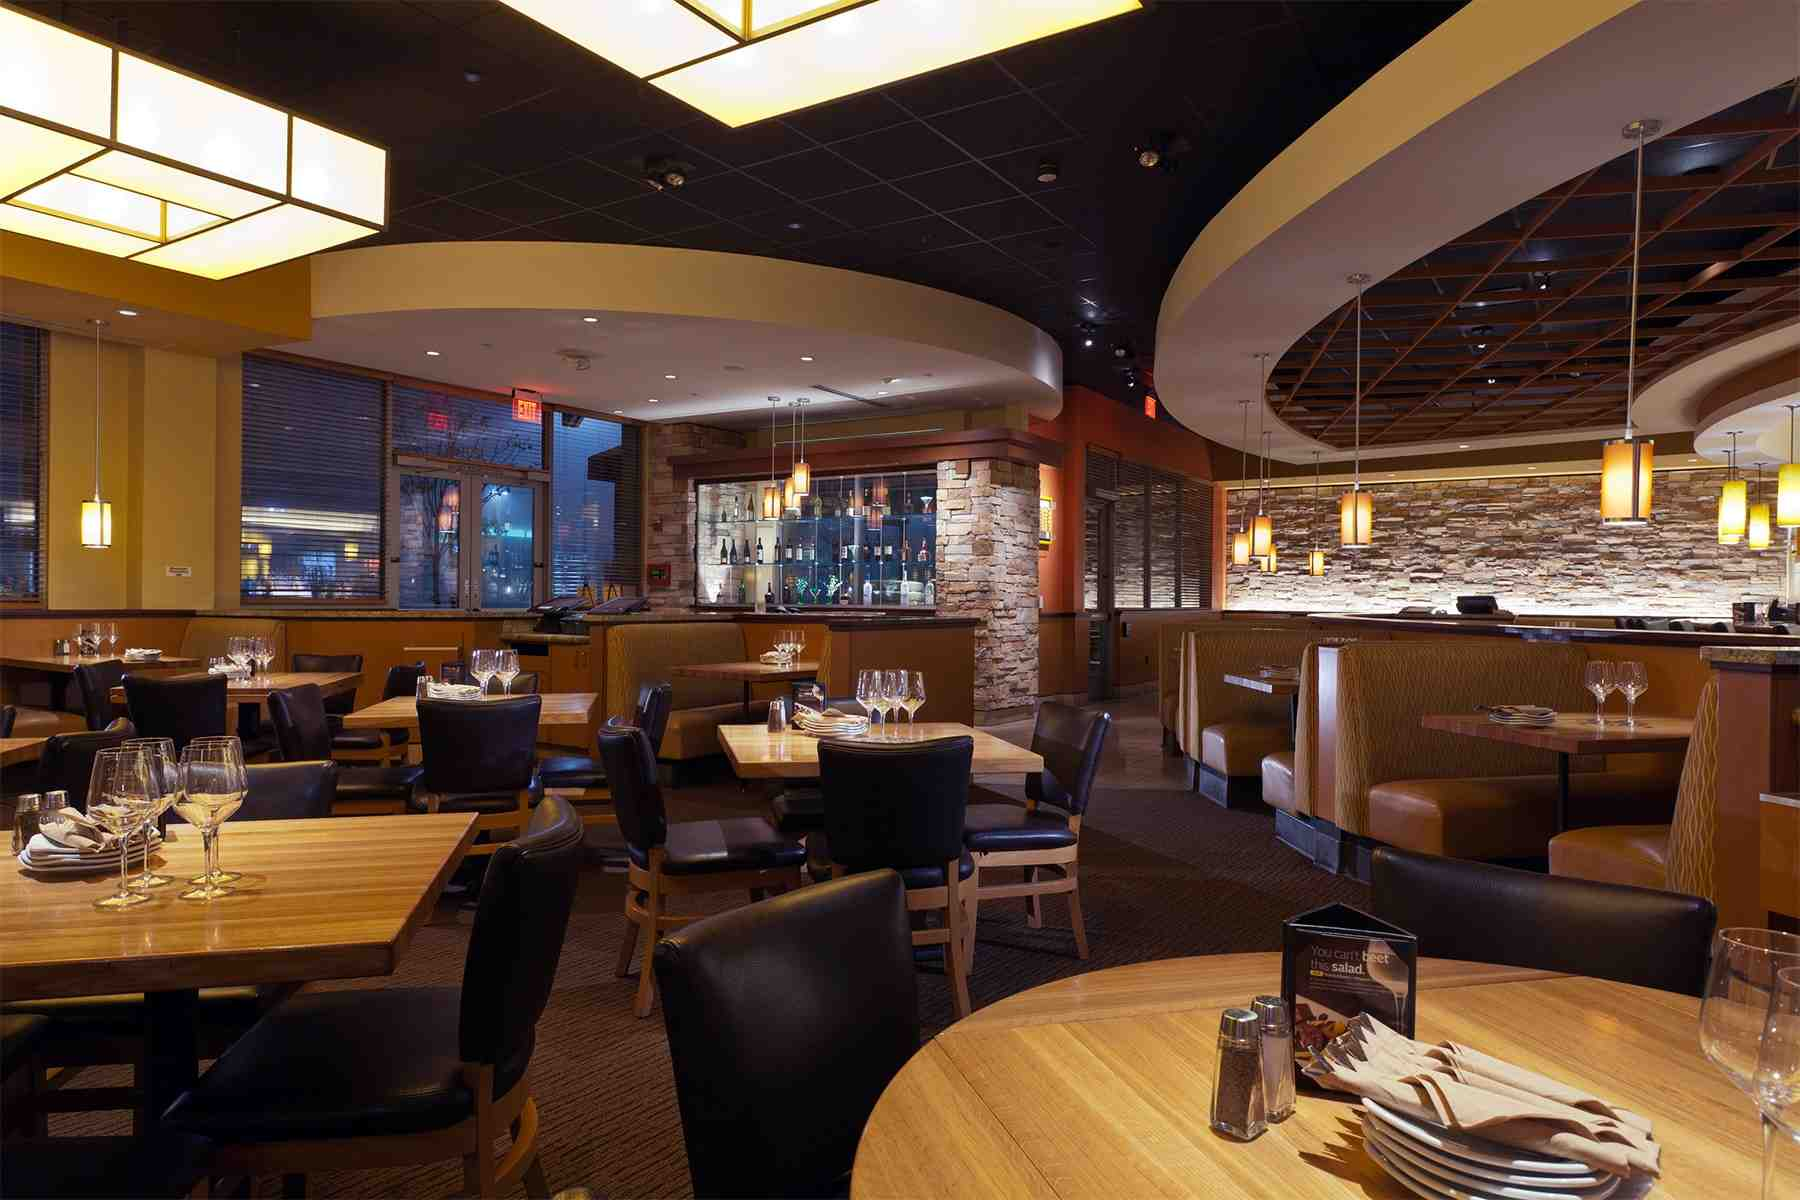 California pizza kitchen 1